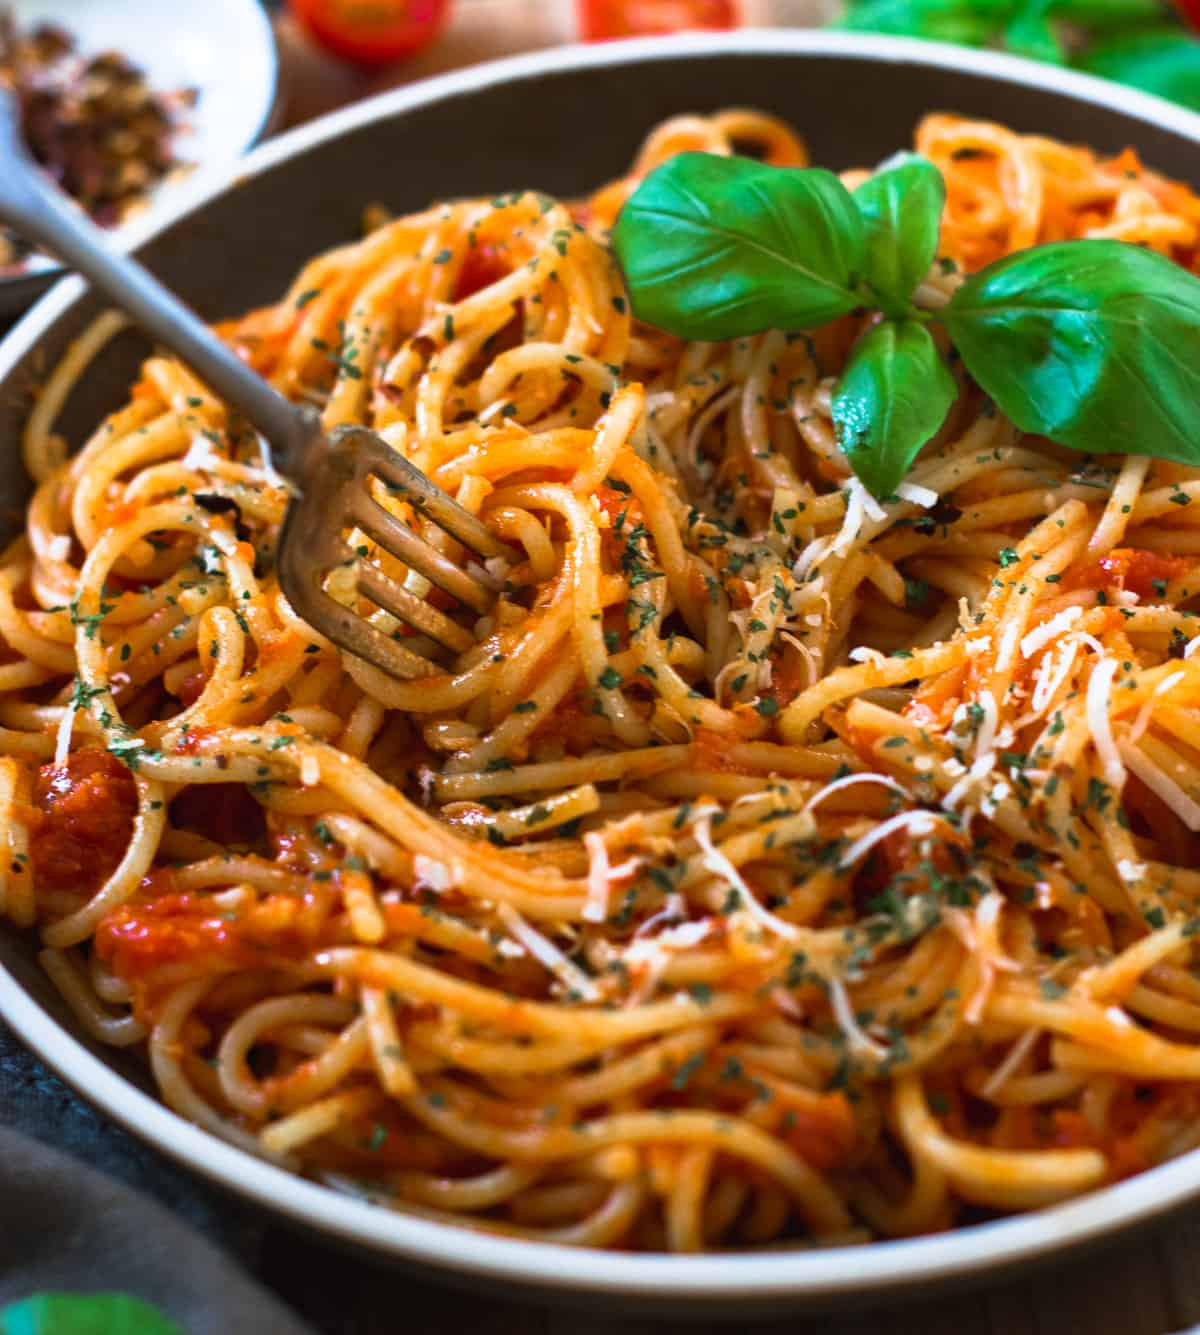 Spaghetti pasta to be eaten with a fork